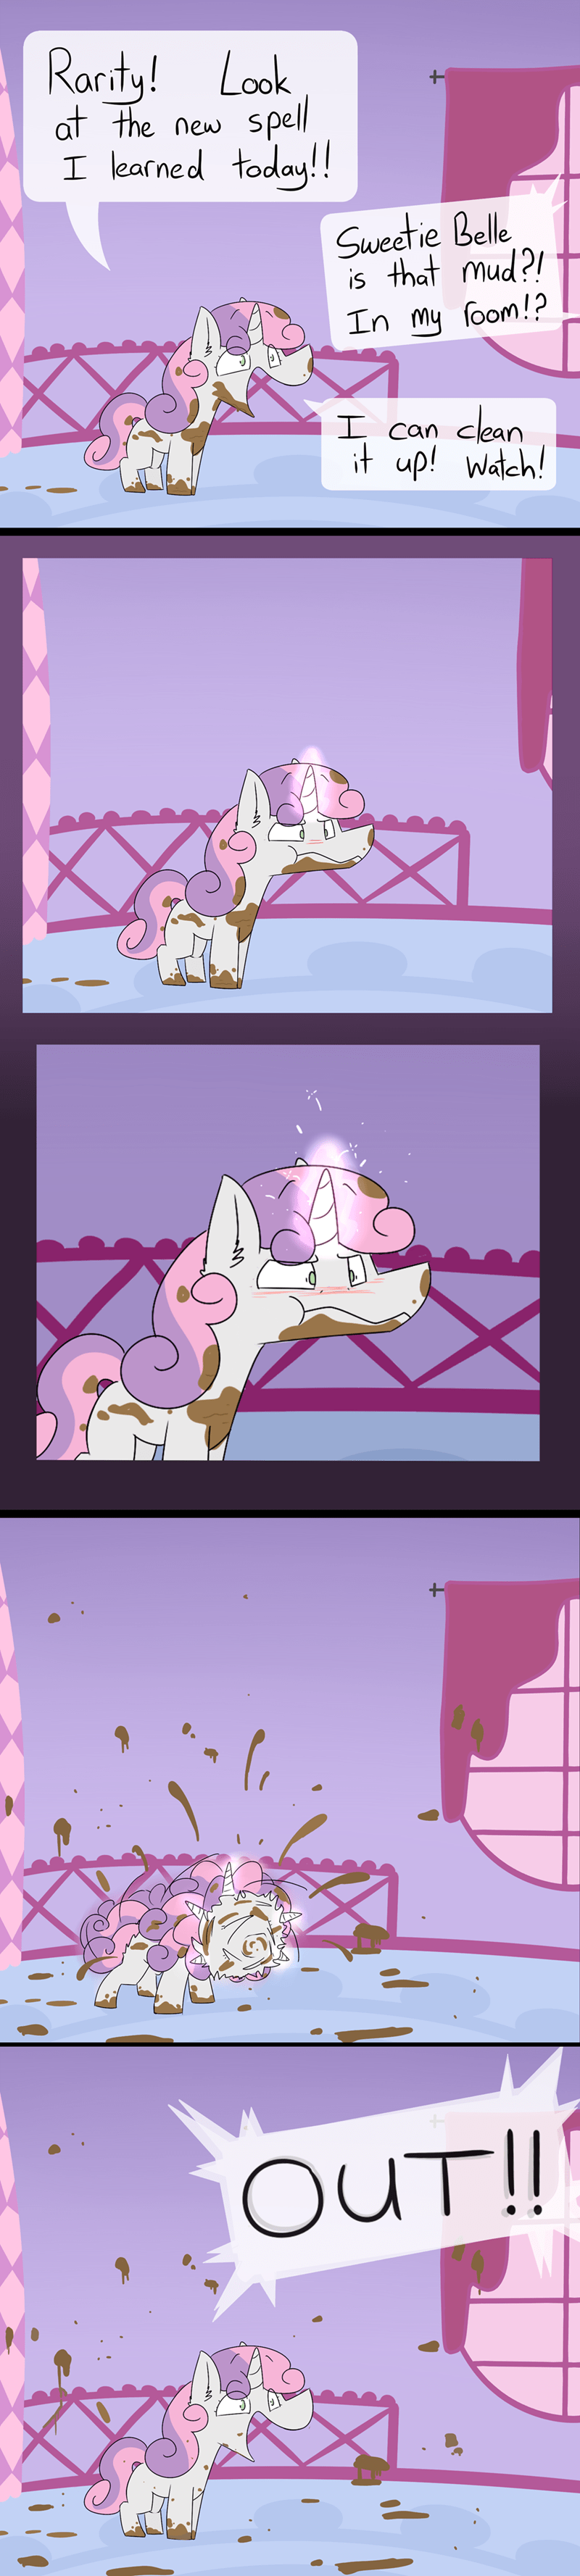 Sweetie Belle input command rarity comic acting like animals - 9257166592